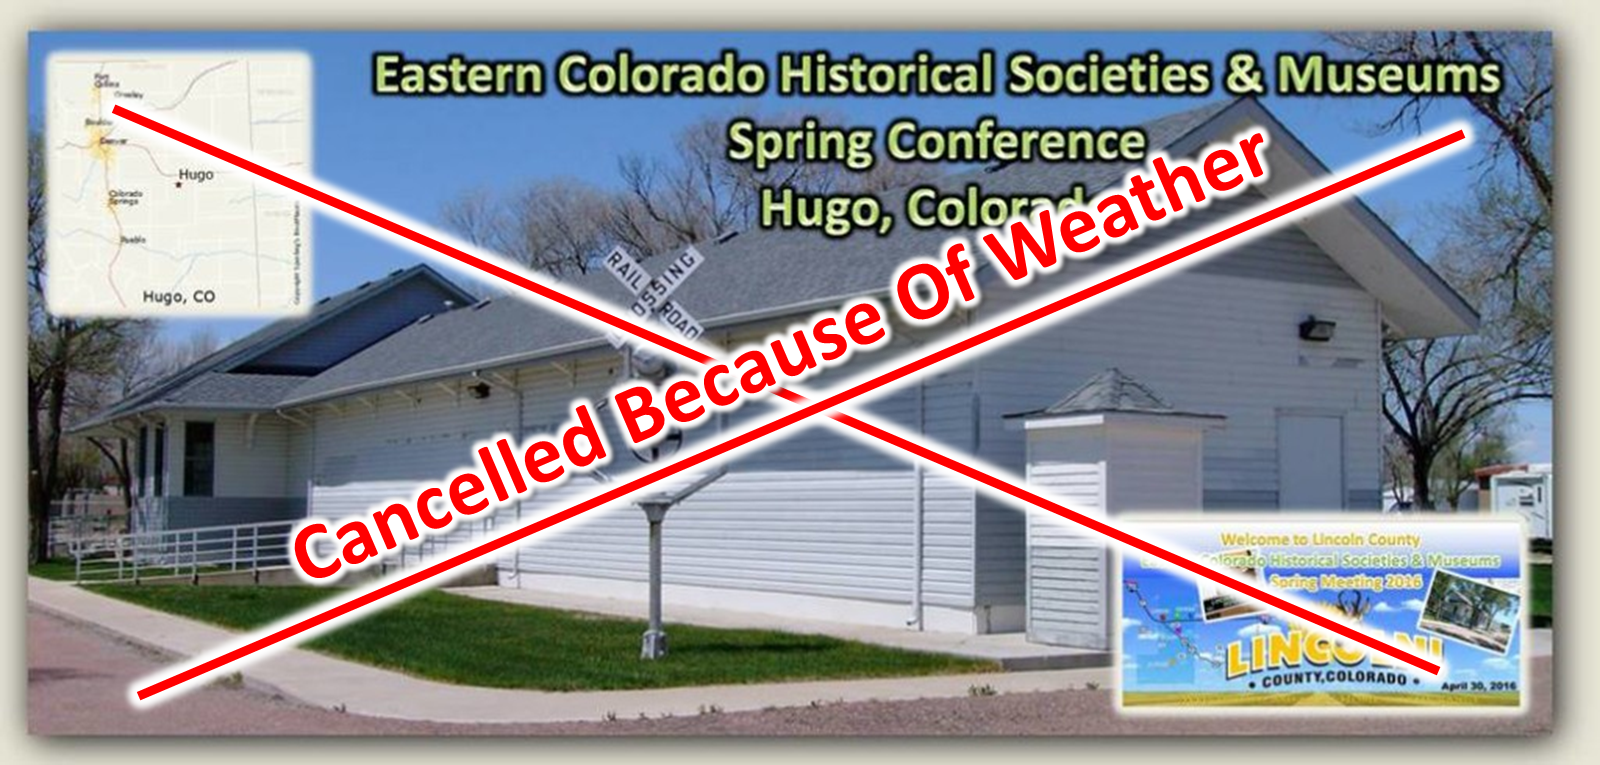 ECSH&M Cancelled Because of Weather